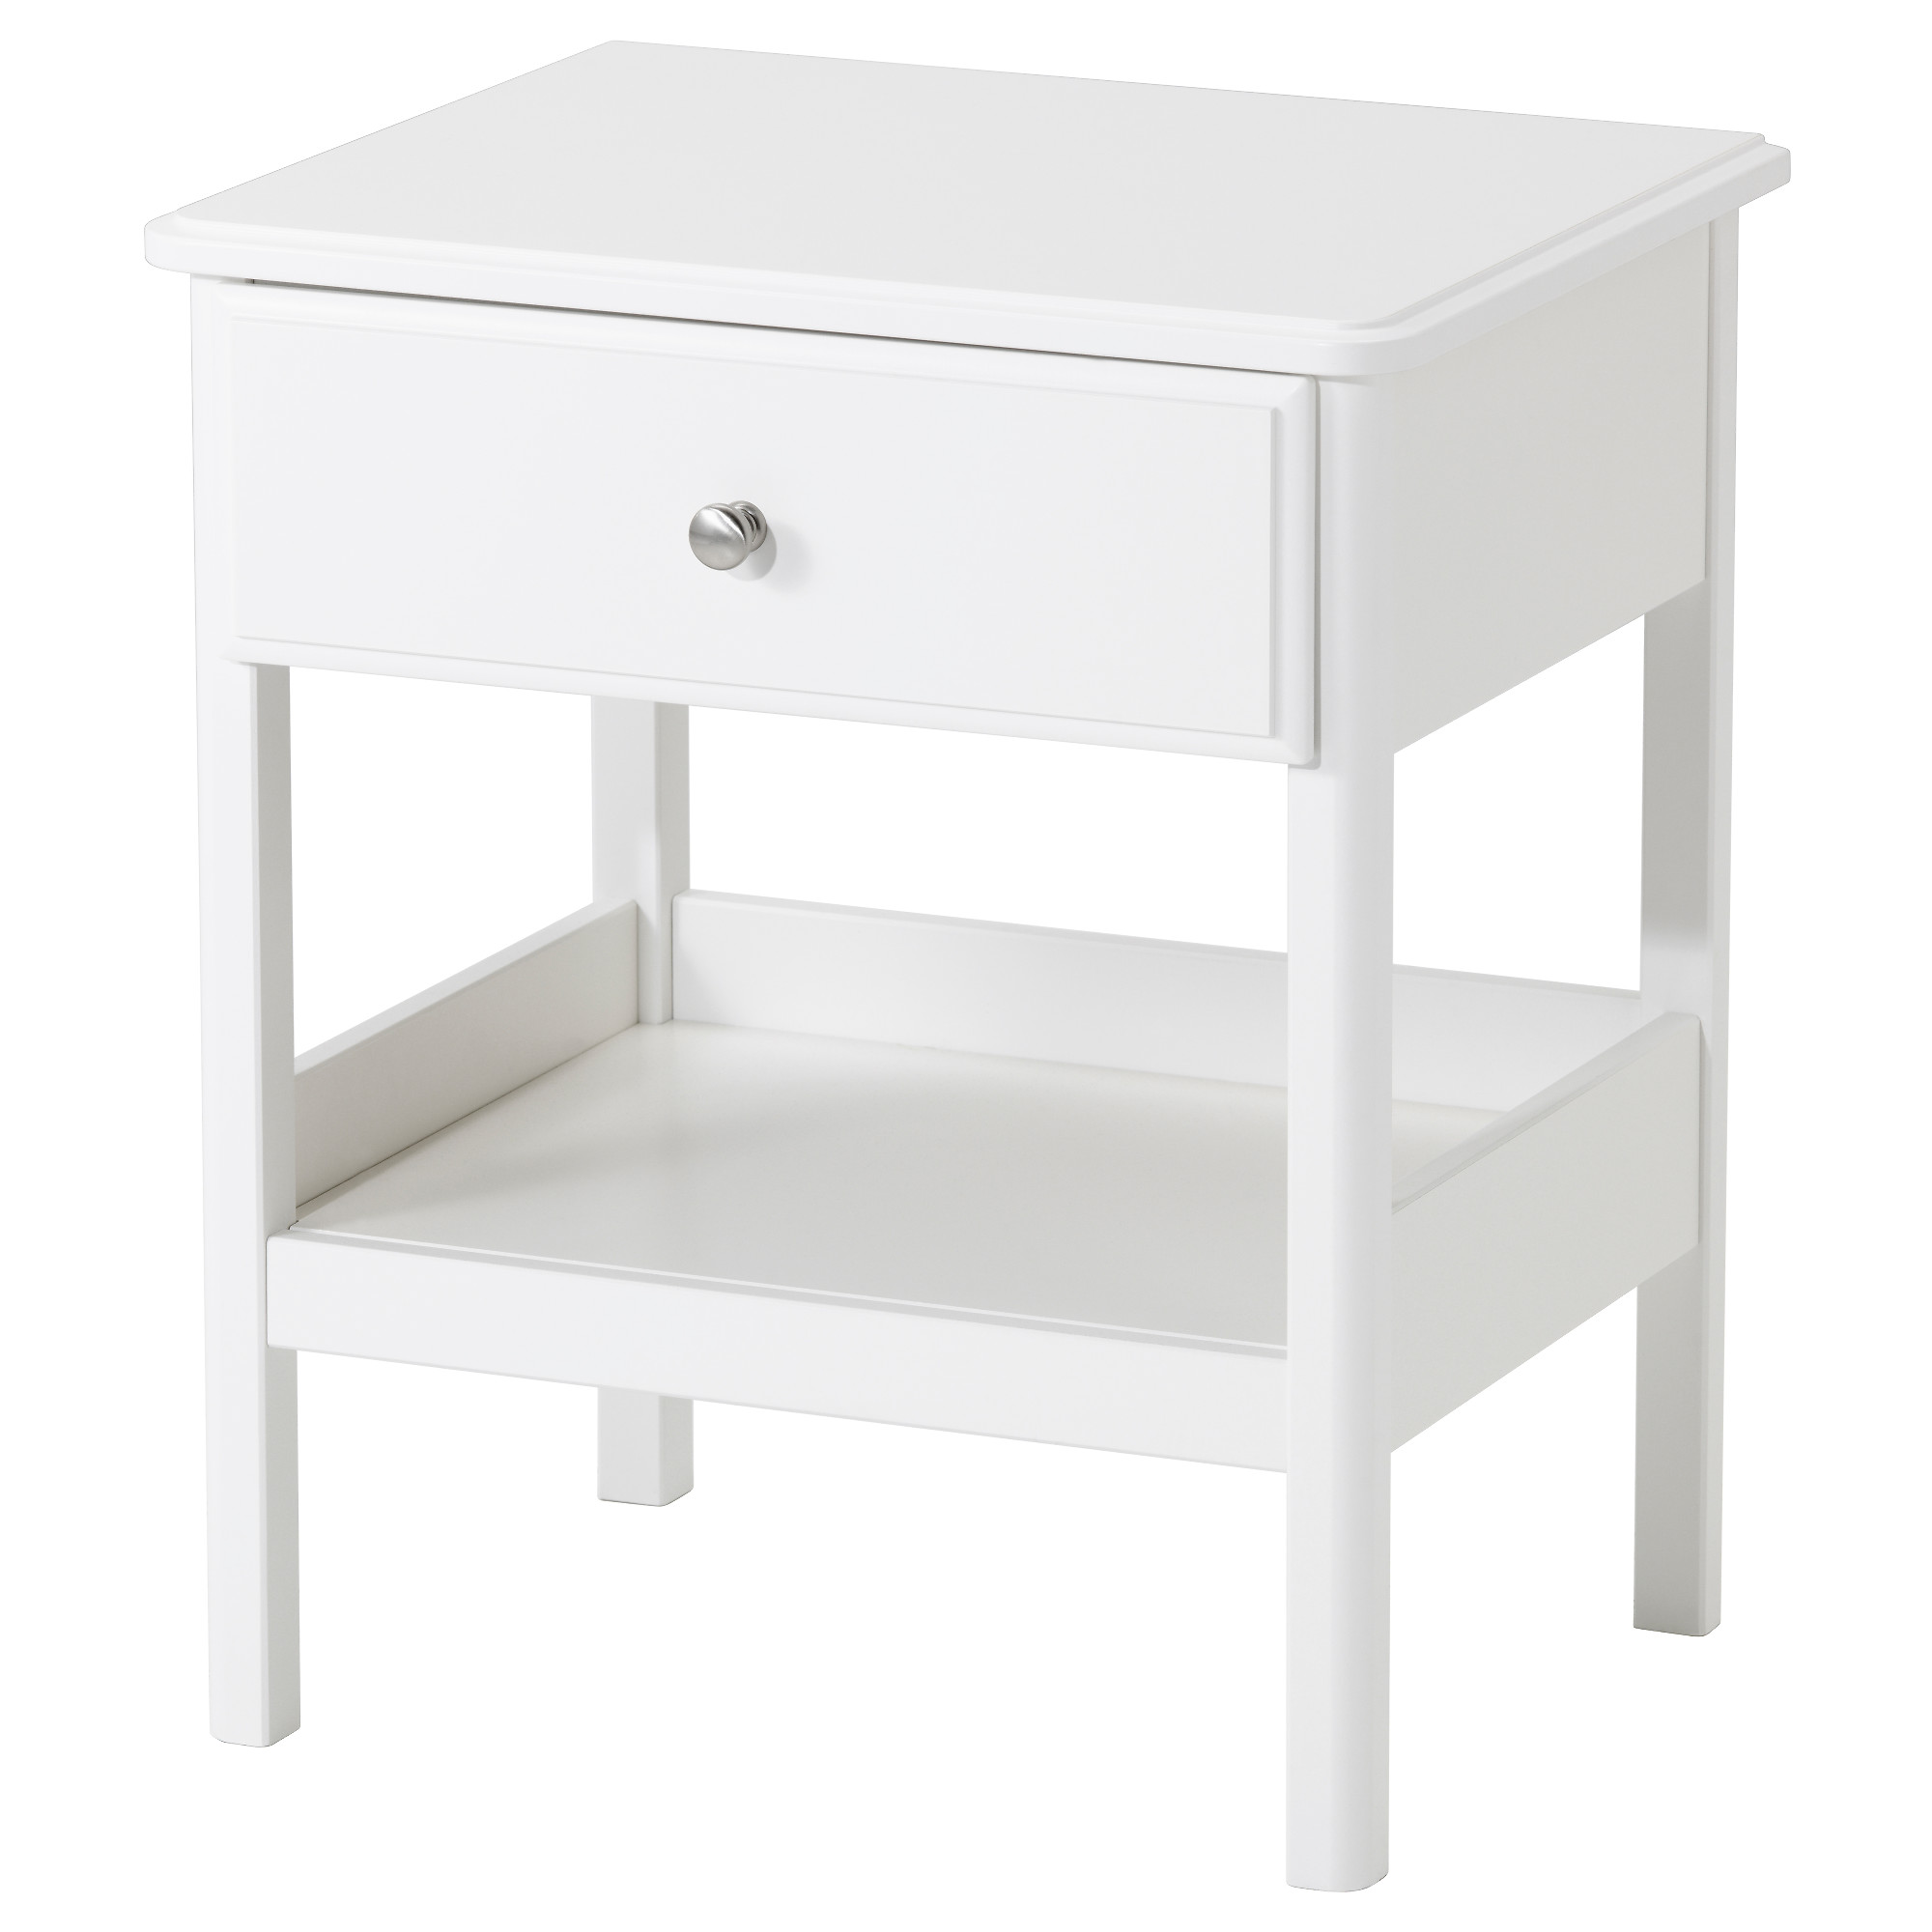 furniture night stands ikea will match your bedroom affordable nightstands pier one tarva nightstand small white bedside table floating for hemn accent uttermost end tables